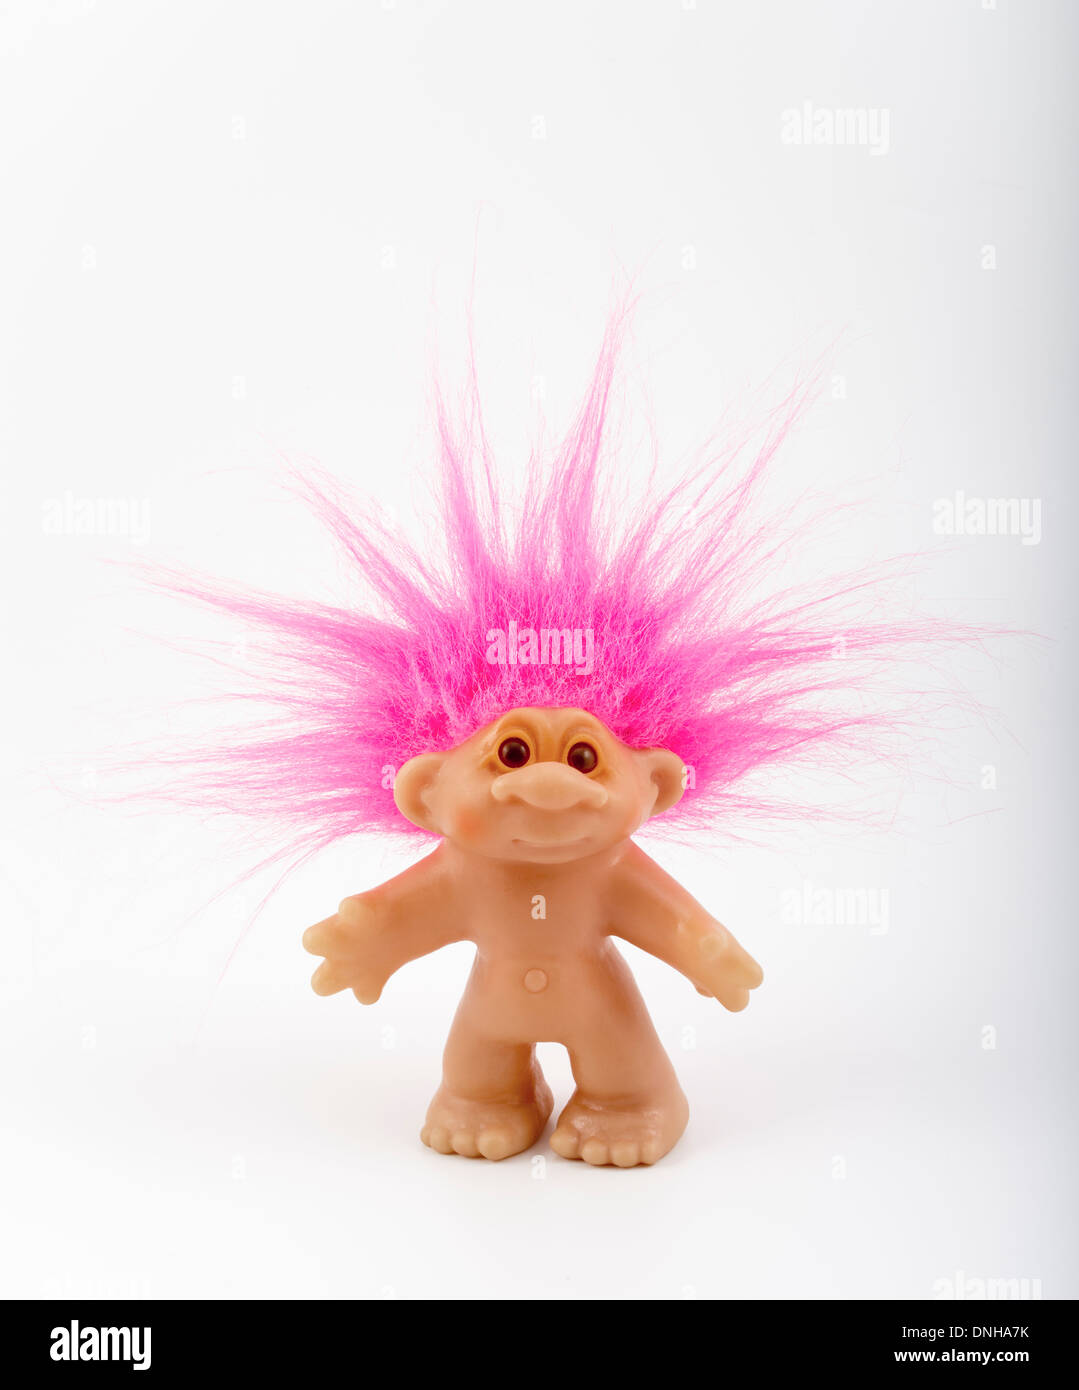 Troll Doll aka Dam Doll first created 1959 by Thomas Dam. Stock Photo